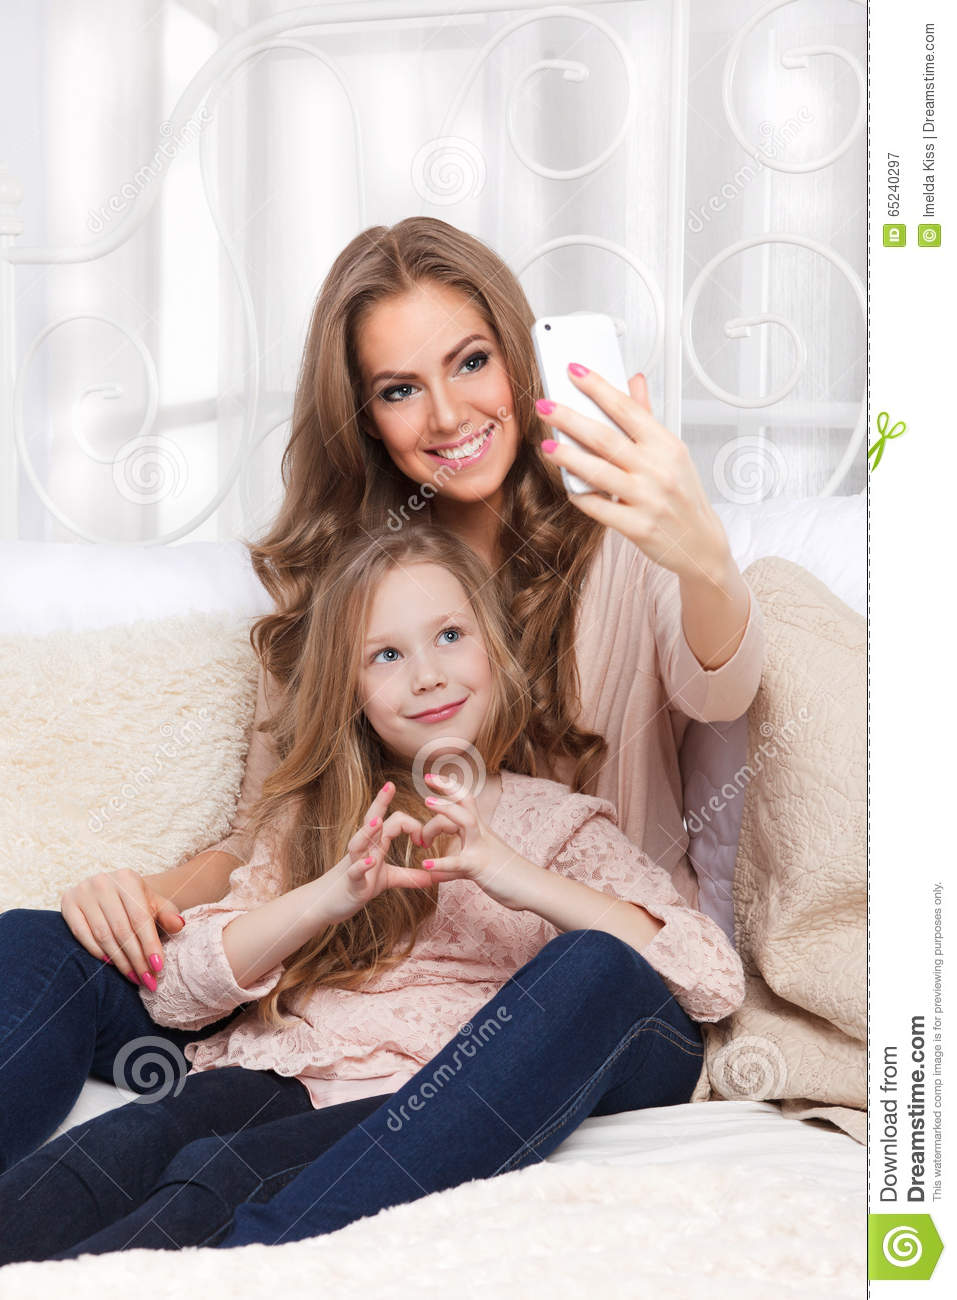 Happy woman and child taking a selfie